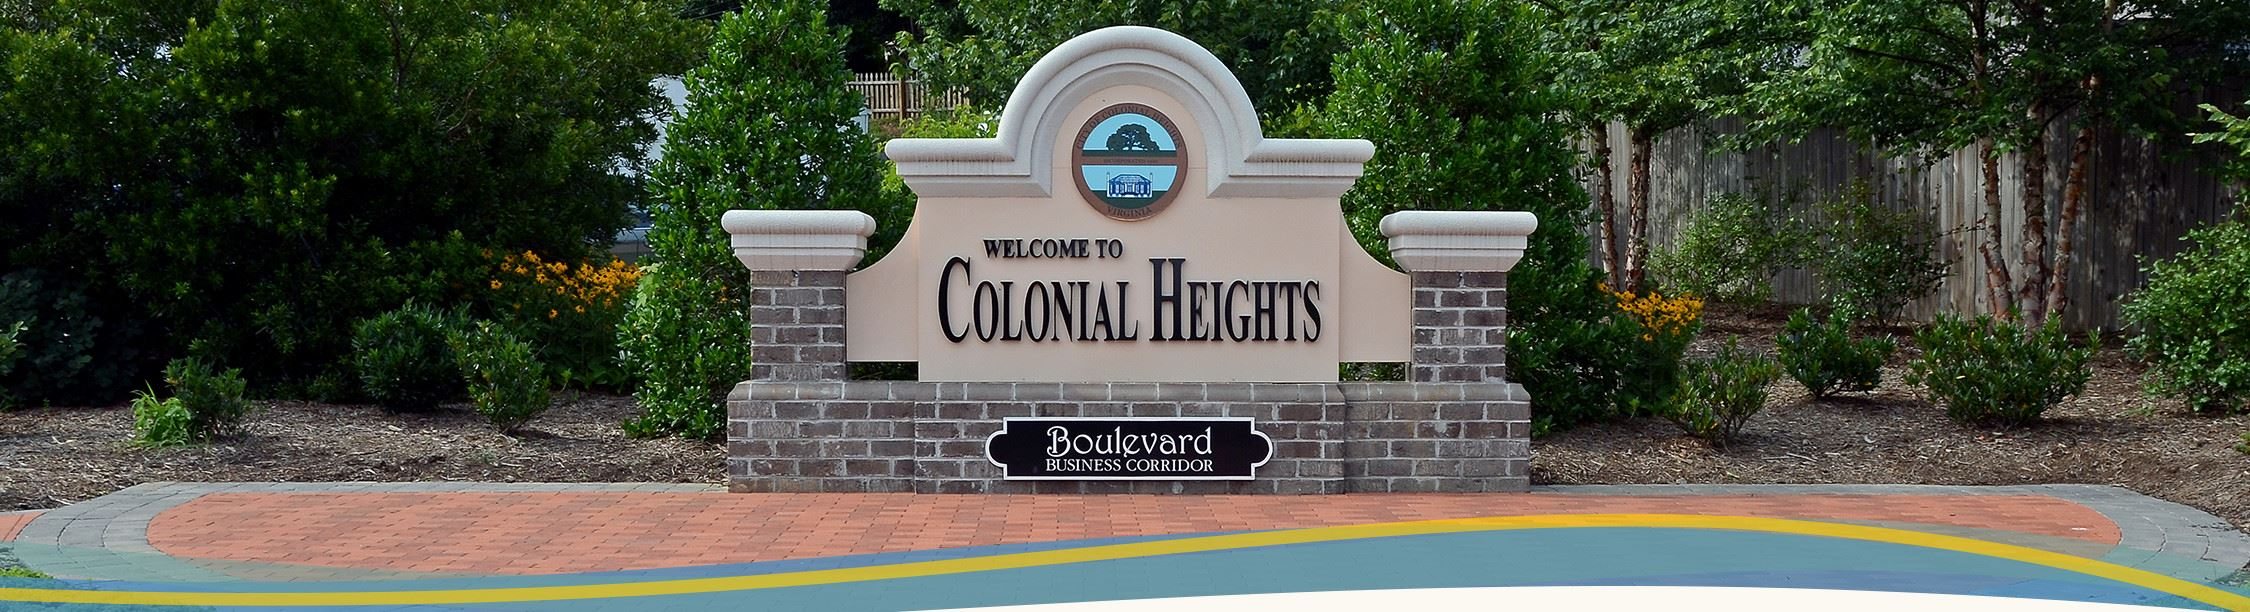 Colonial Heights, VA - Official Website | Official Website